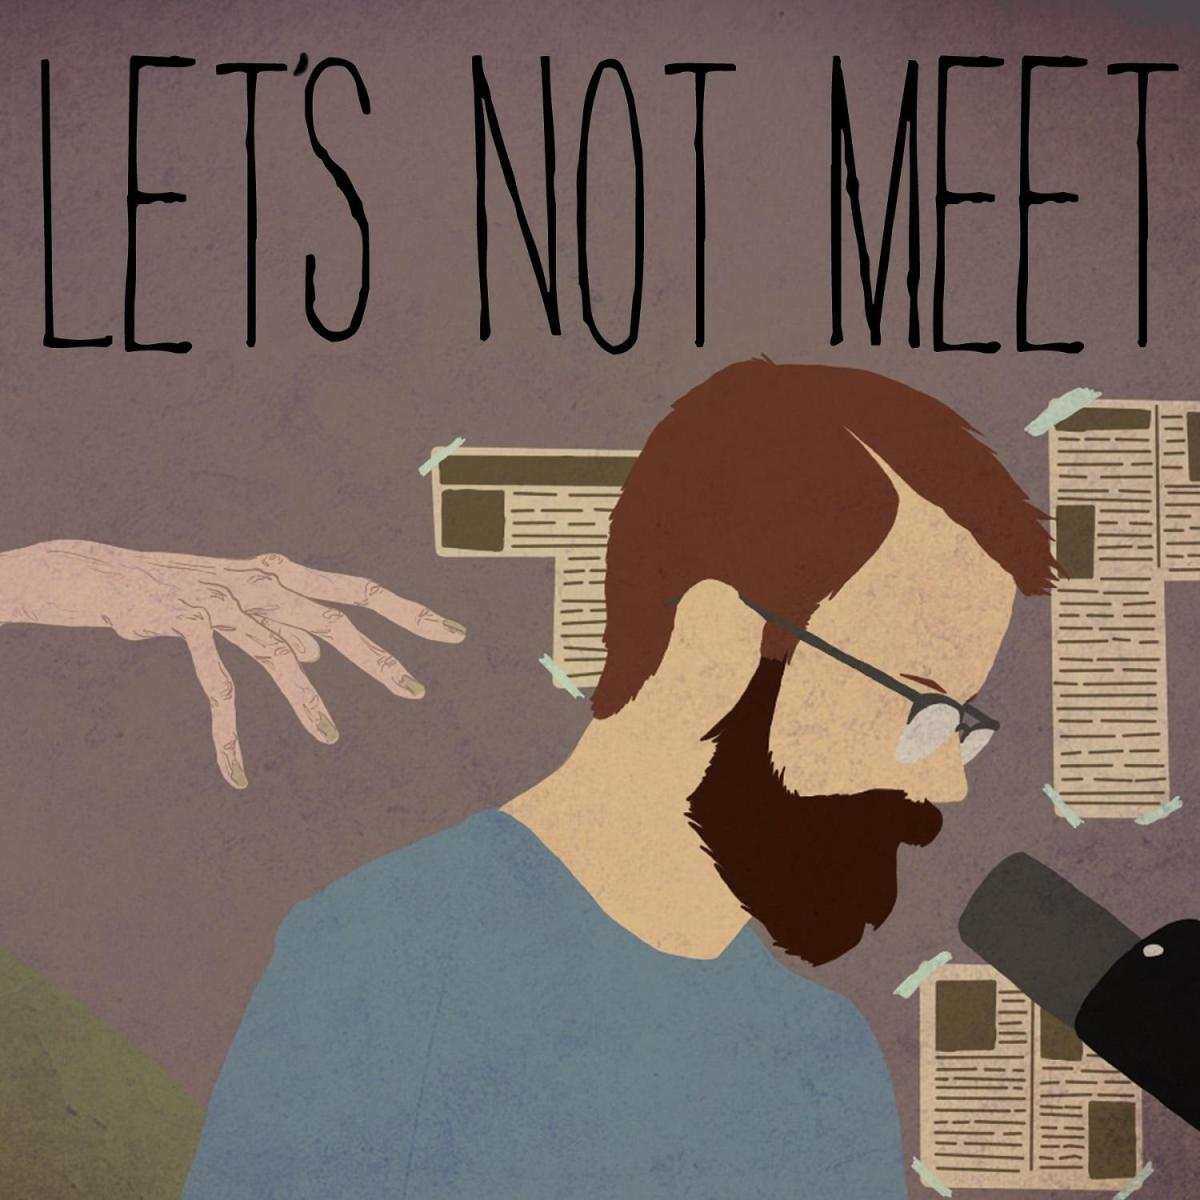 Let's Not Meet is a true horror podcast   Boing Boing